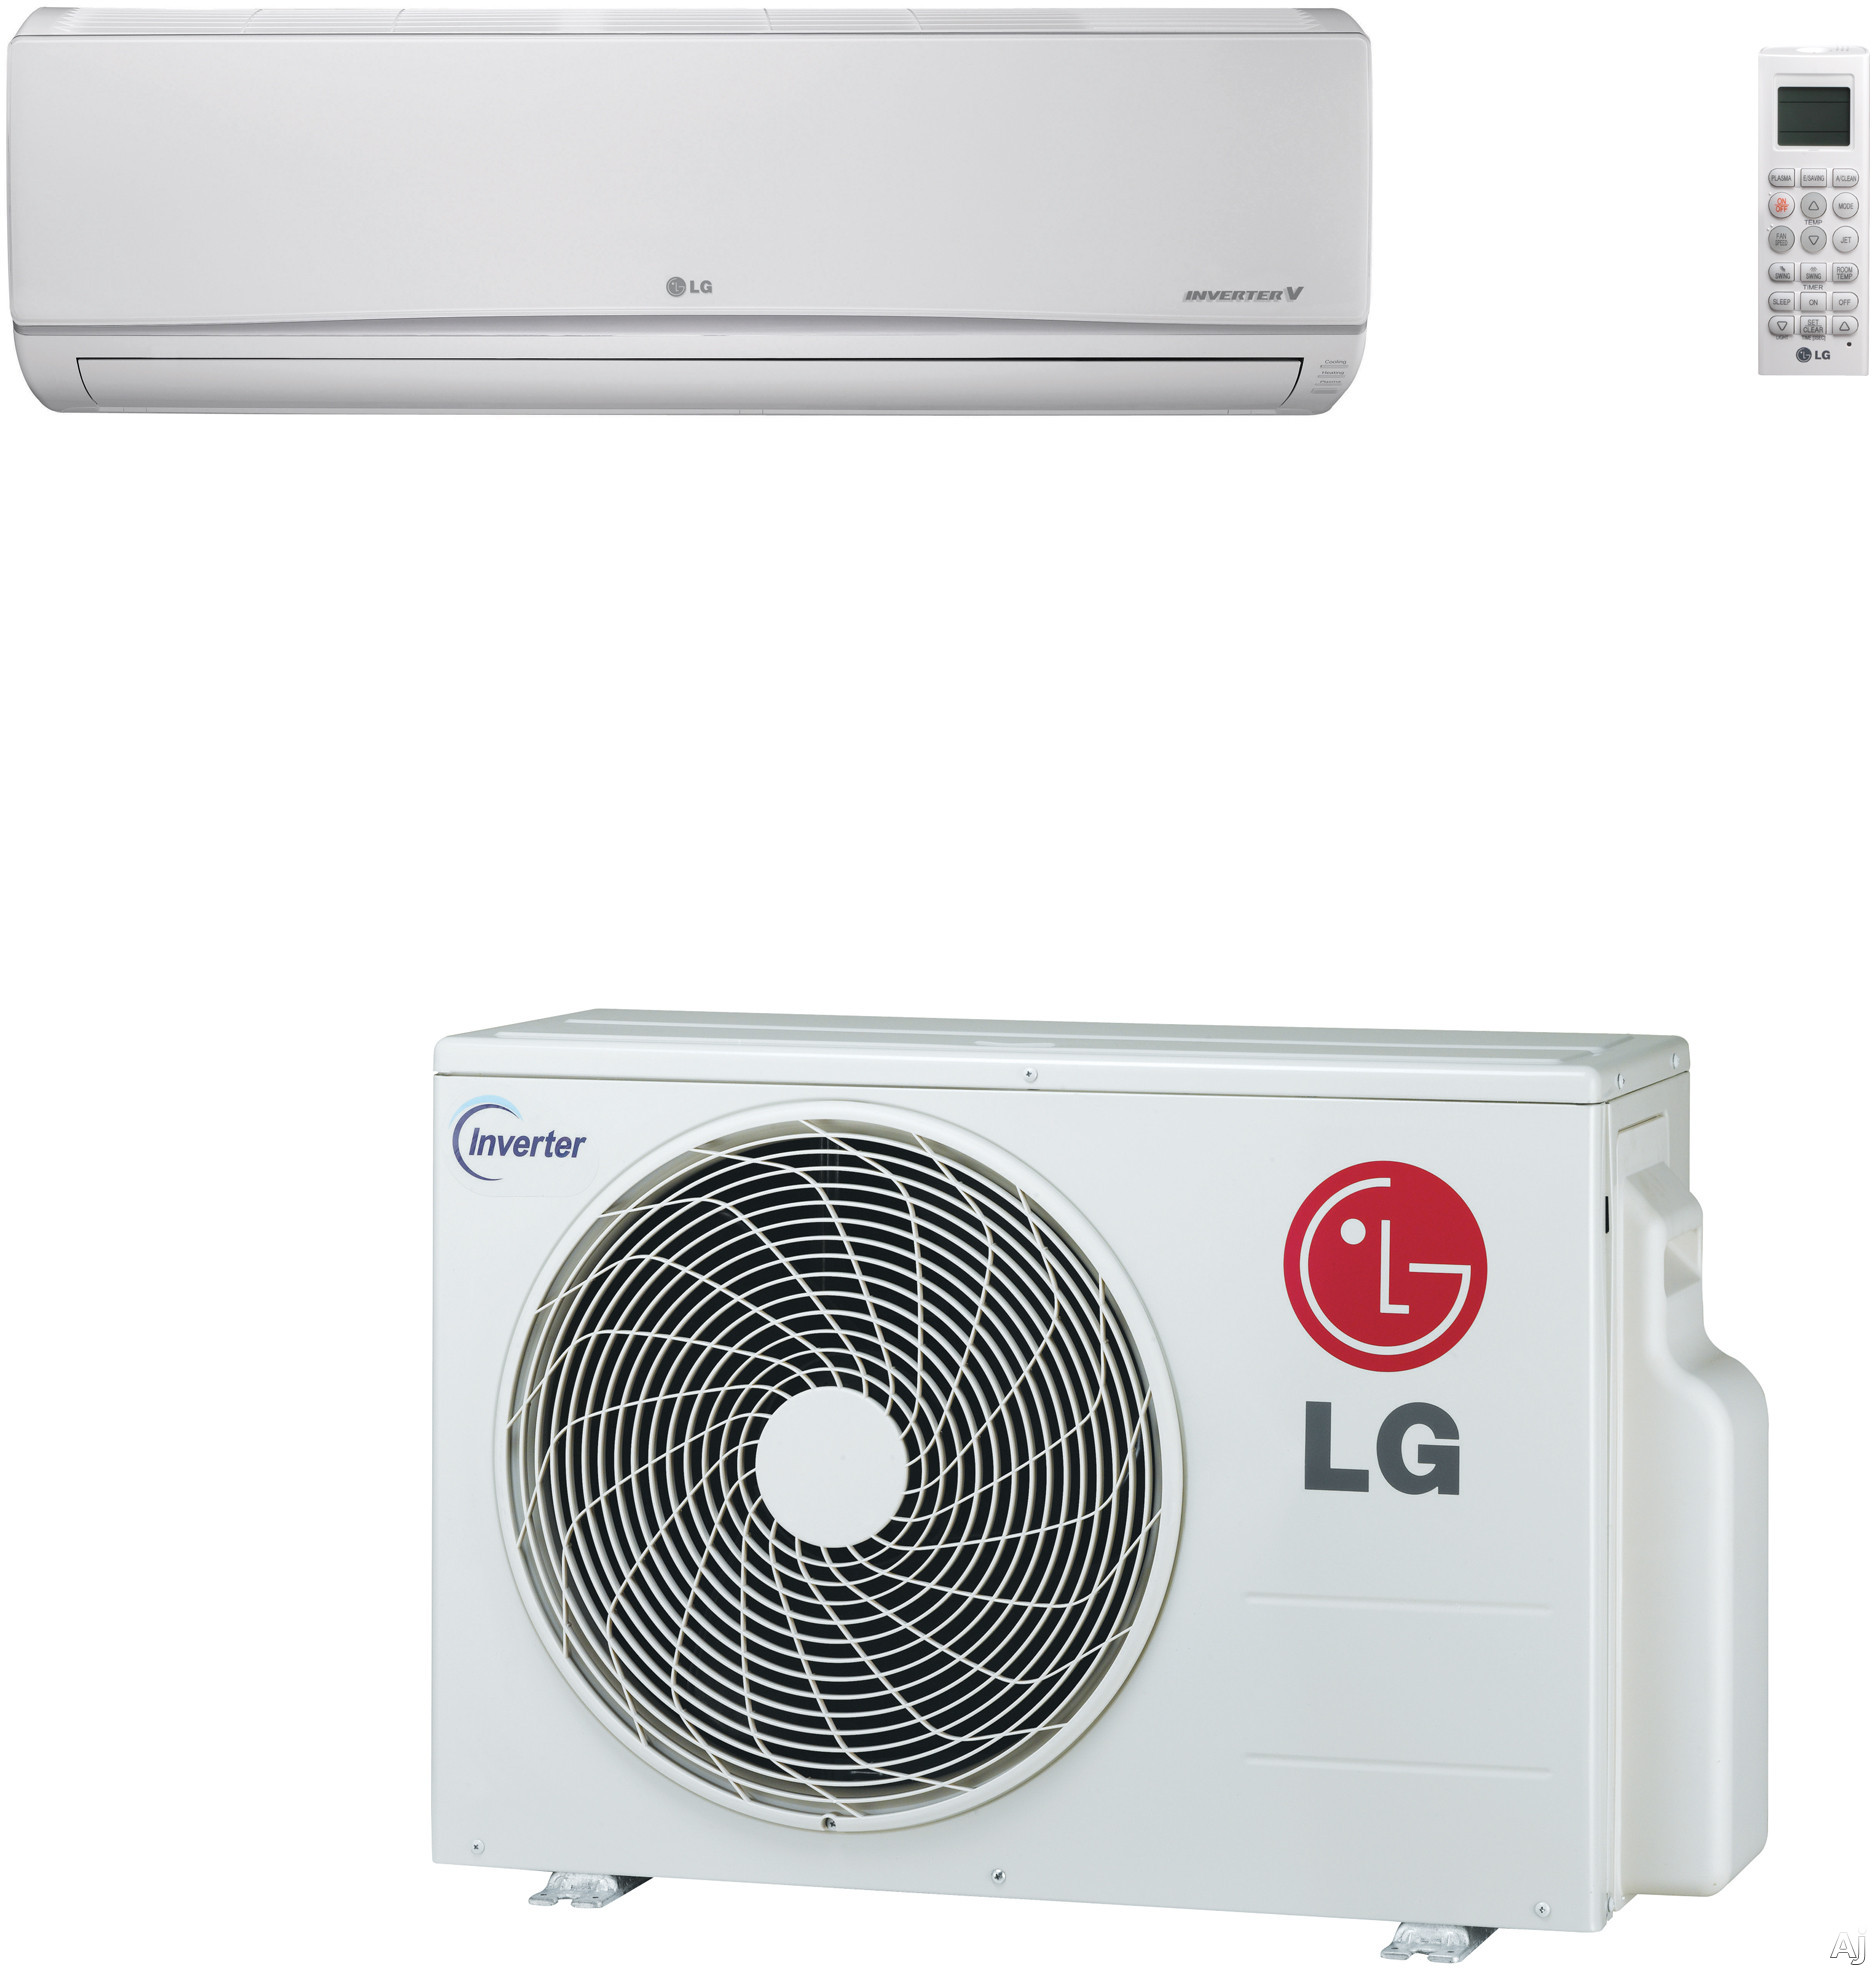 LG LS120HEV1 12,000 BTU Mega Single Zone Wall-Mount Ductless Split System with 12,000 BTU Heat Pump, 16.3 SEER, 10.26 EER and Inverter Compressor (LSN120HEV1 Indoor / LSU120HEV1 Outdoor) LS120HEV1